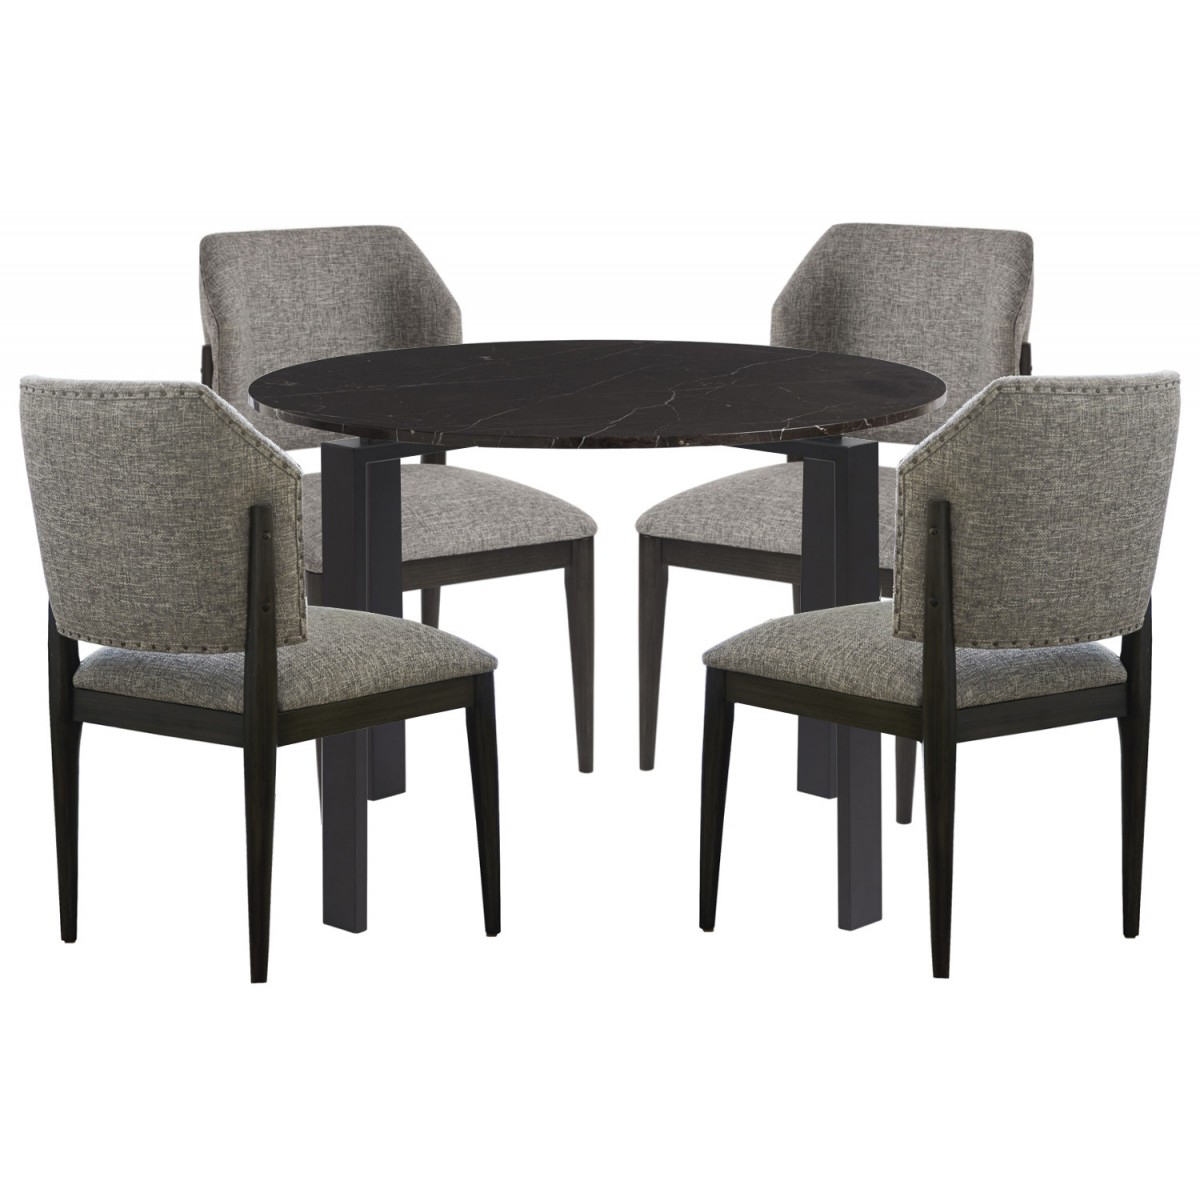 Universal Furniture Spaces Marshall 5Pc Dining Table Set Black Marble Top#736 With Regard To Most Up To Date Chapman Round Marble Dining Tables (View 9 of 25)